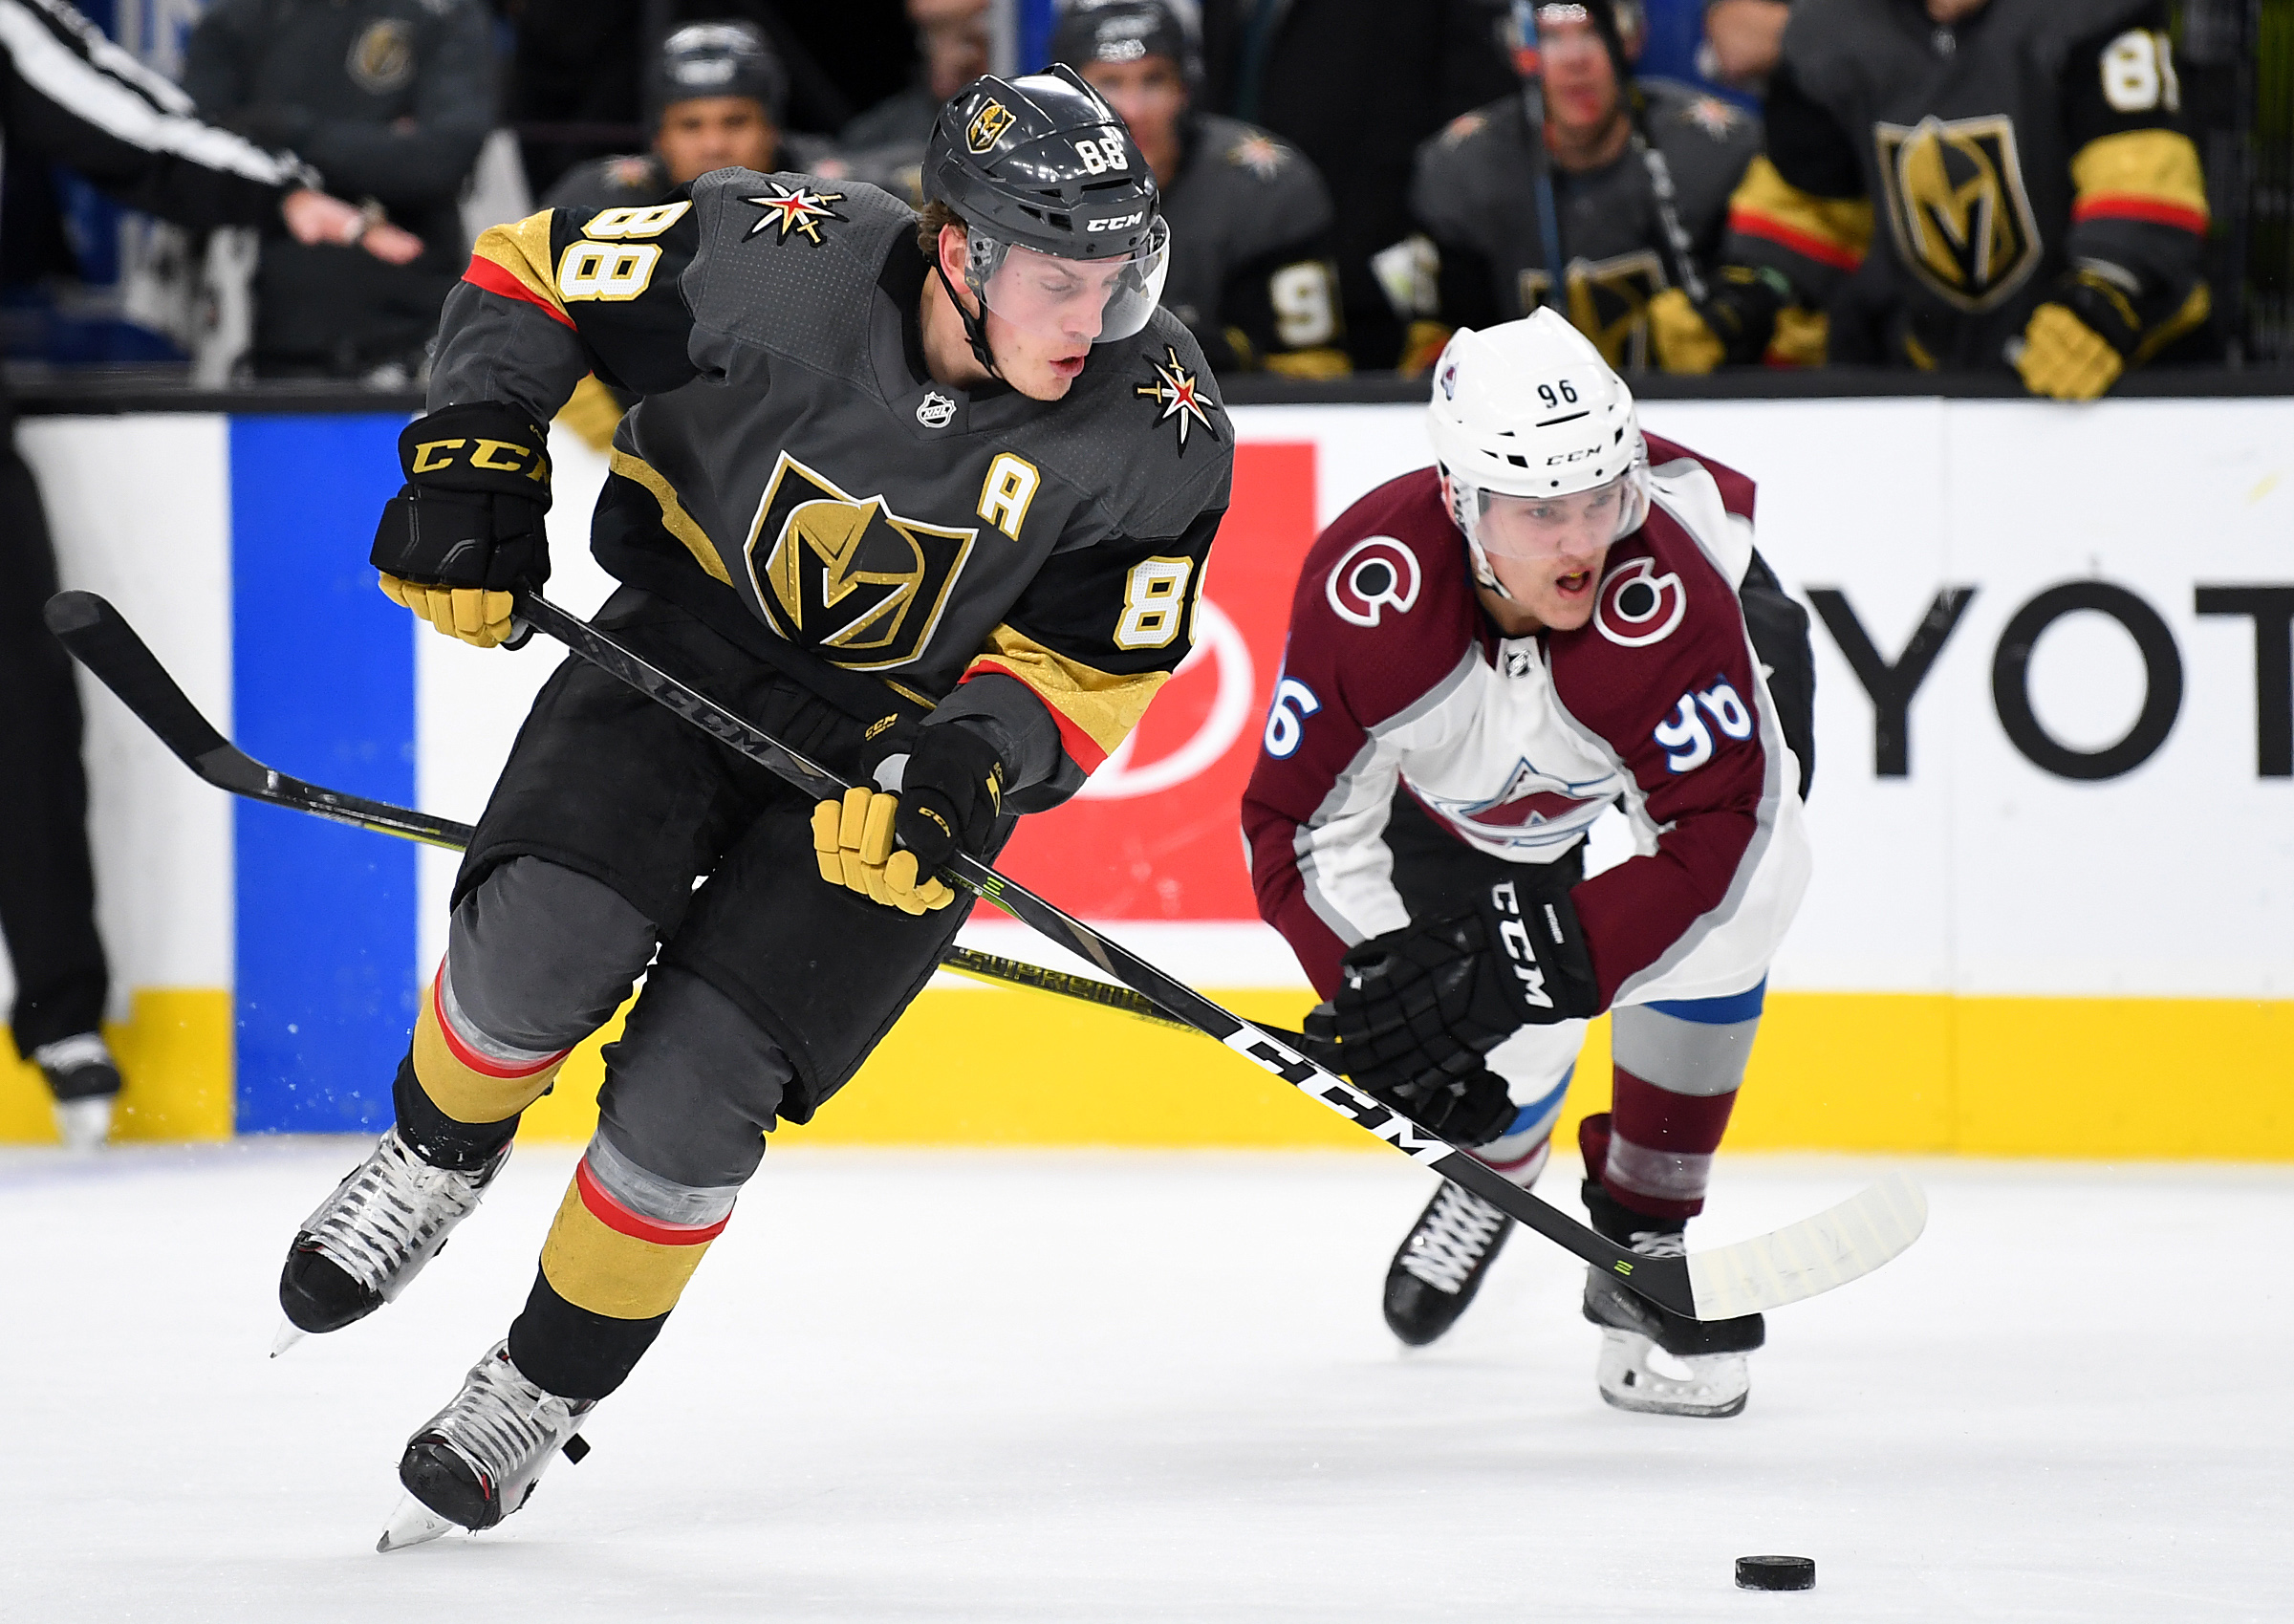 NHL: Colorado Avalanche at Vegas Golden Knights